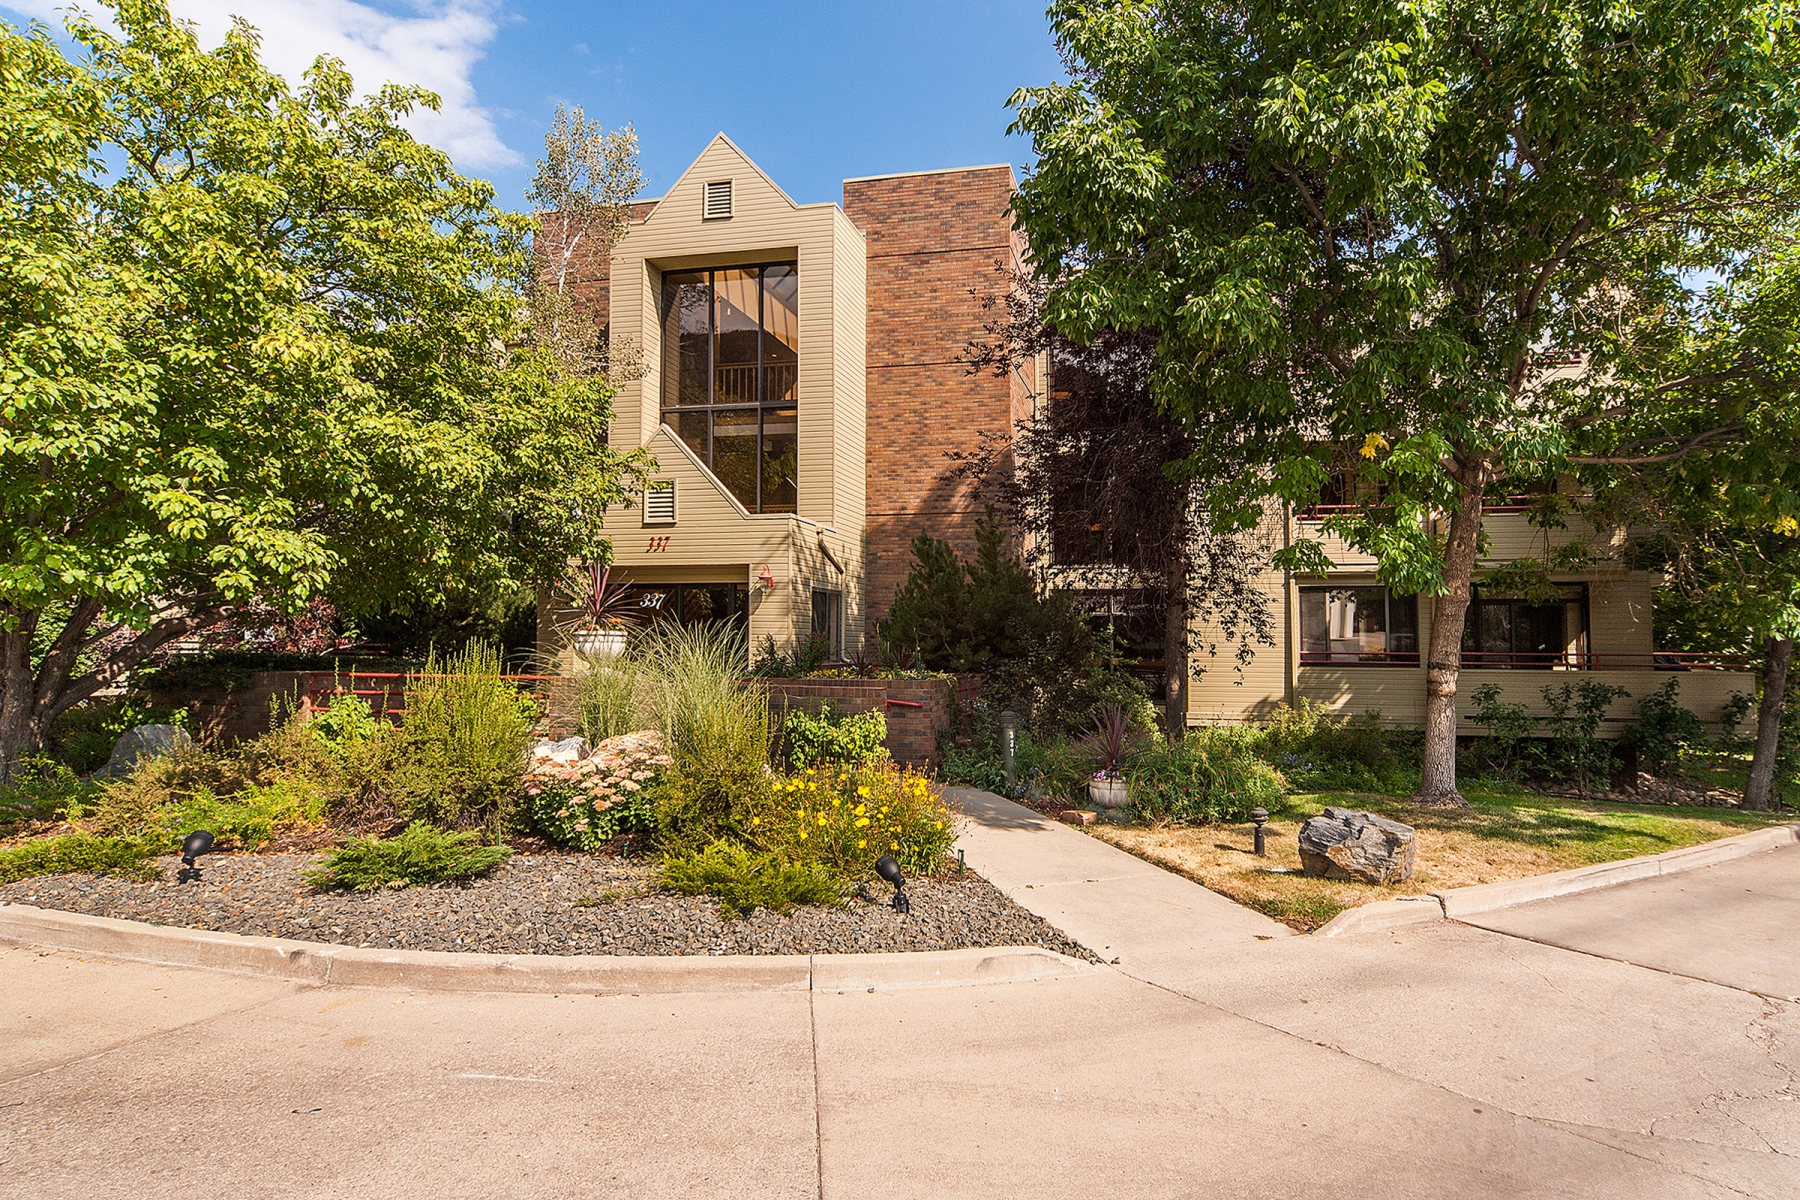 Condominium for Sale at Penthouse Overlooking Boulder 337 Arapahoe Ave 301 Boulder, Colorado 80302 United States